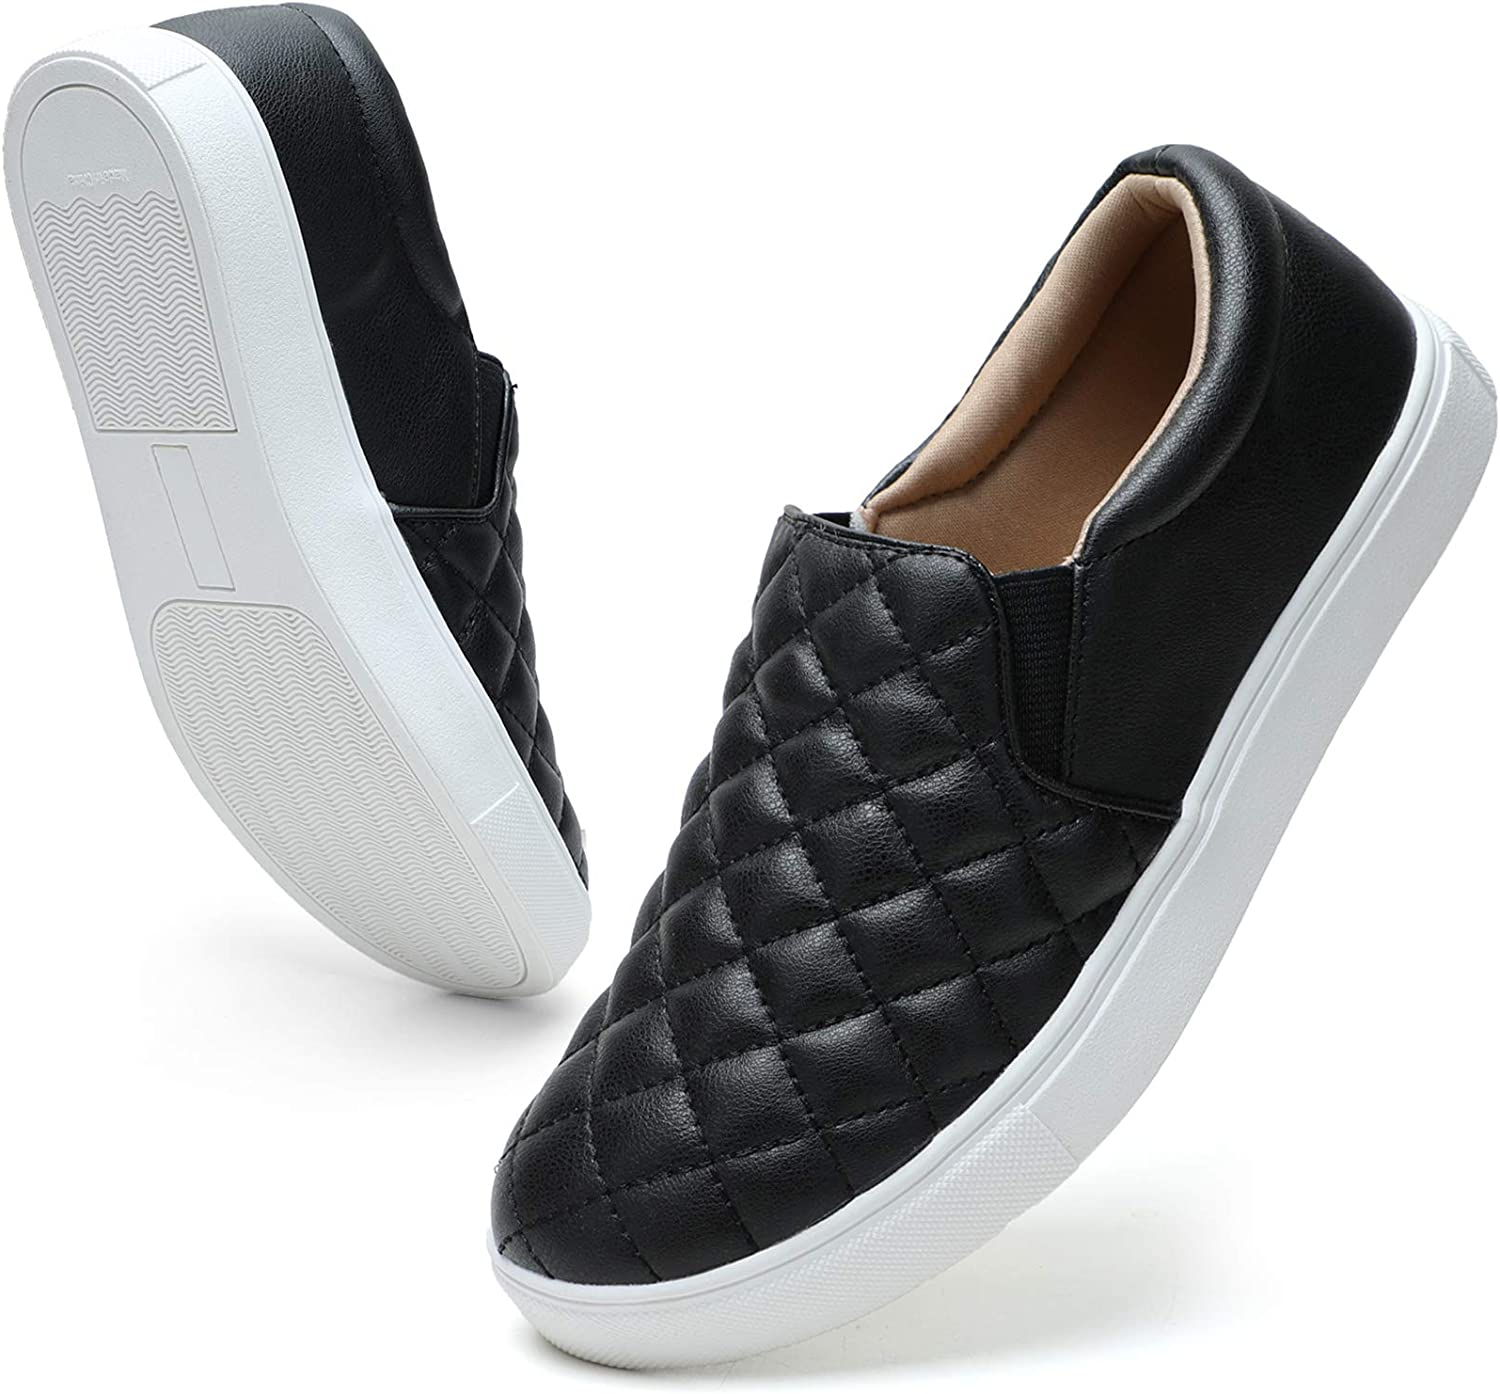 STQ Loafers for Women Memory Foam Slip On Sneakers Comfort Fall Shoes